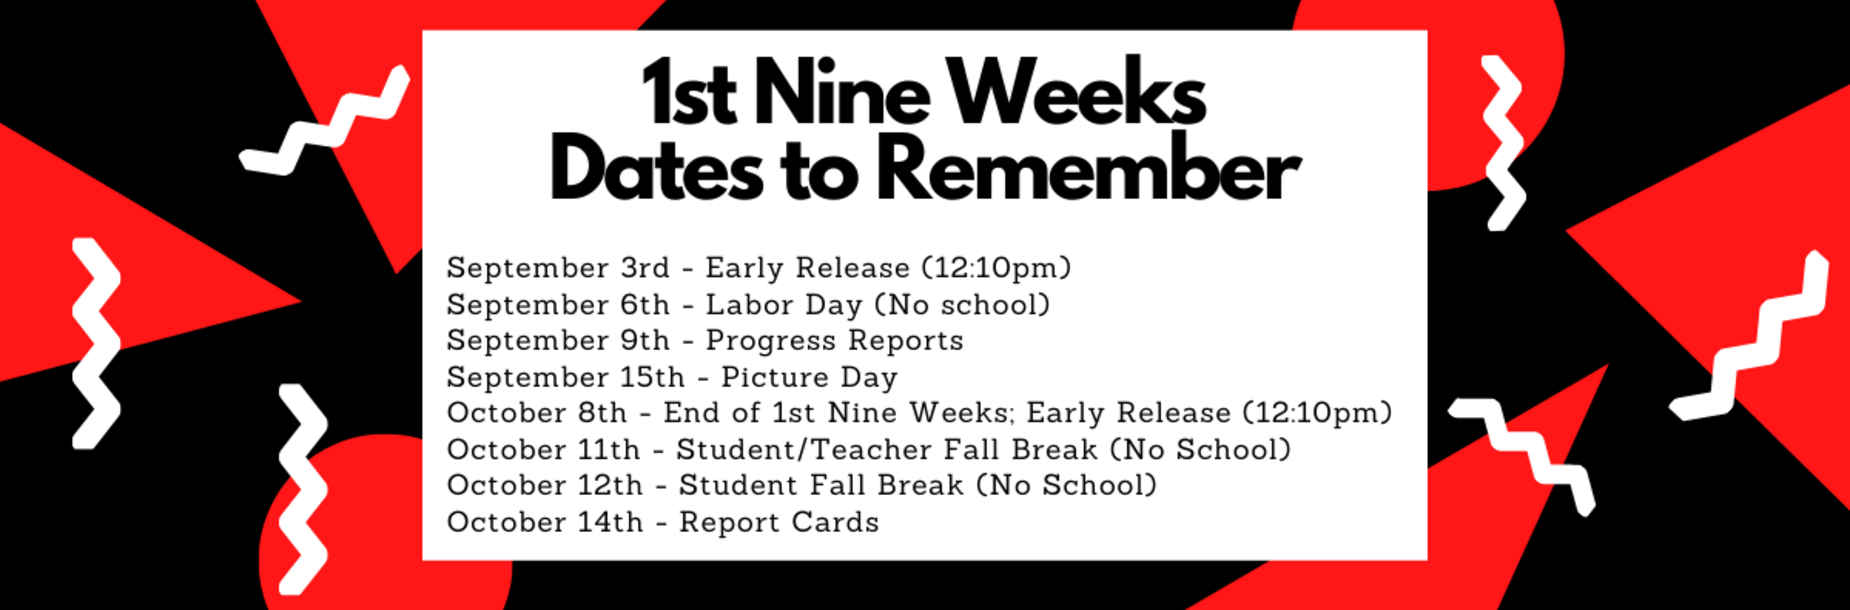 September 3rd - Early Release (12:10pm) September 6th - Labor Day (No school) September 9th - Progress Reports September 15th - Picture Day October 8th - End of 1st Nine Weeks; Early Release (12:10pm) October 11th - Student/Teacher Fall Break (No School) October 12th - Student Fall Break (No School) October 14th - Report Cards